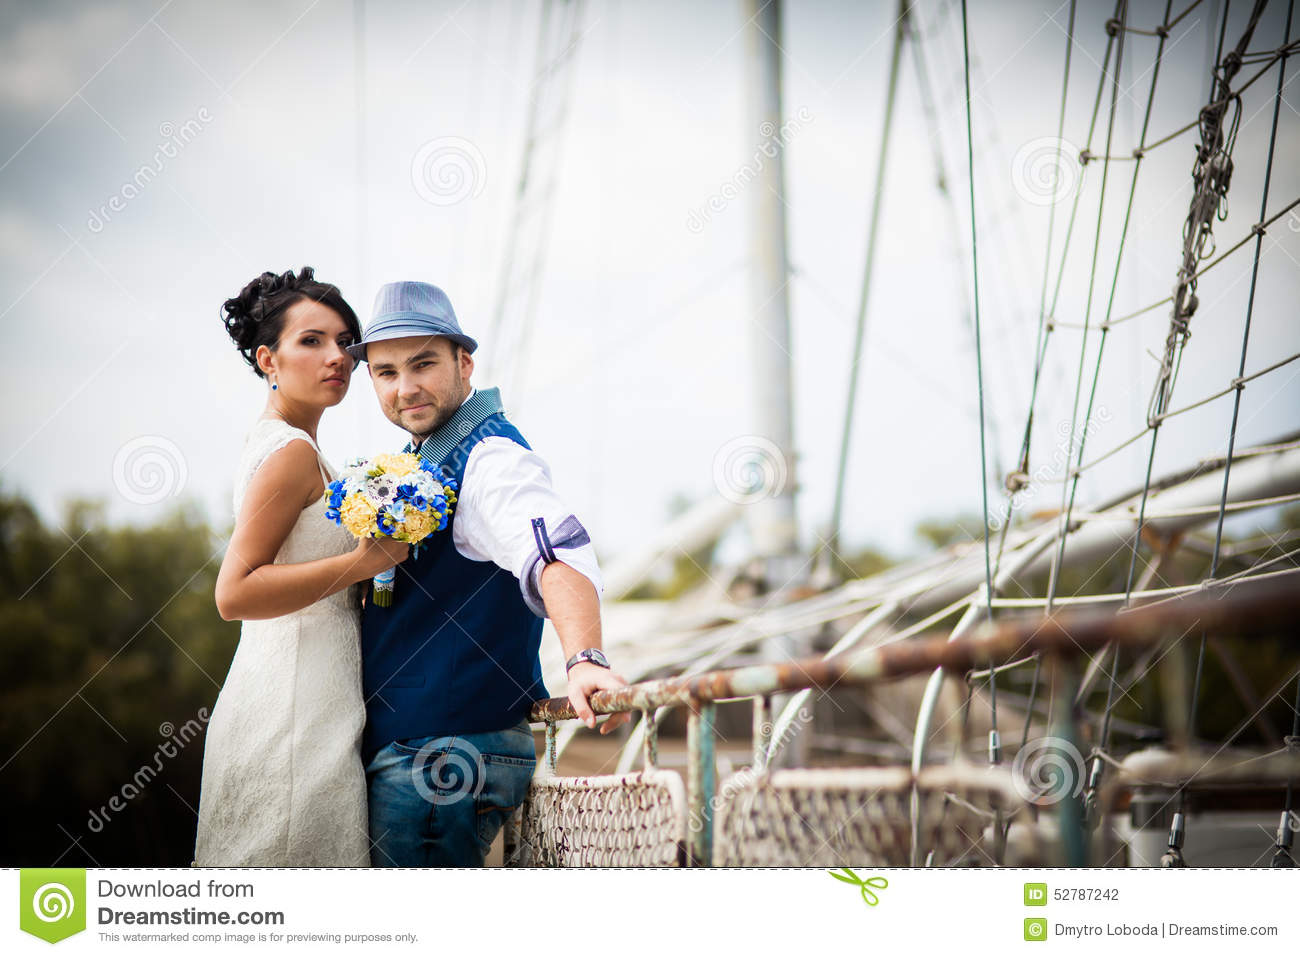 Groom Wedding Hat Stock Photo Image Of Dress Lifestyle 52787242